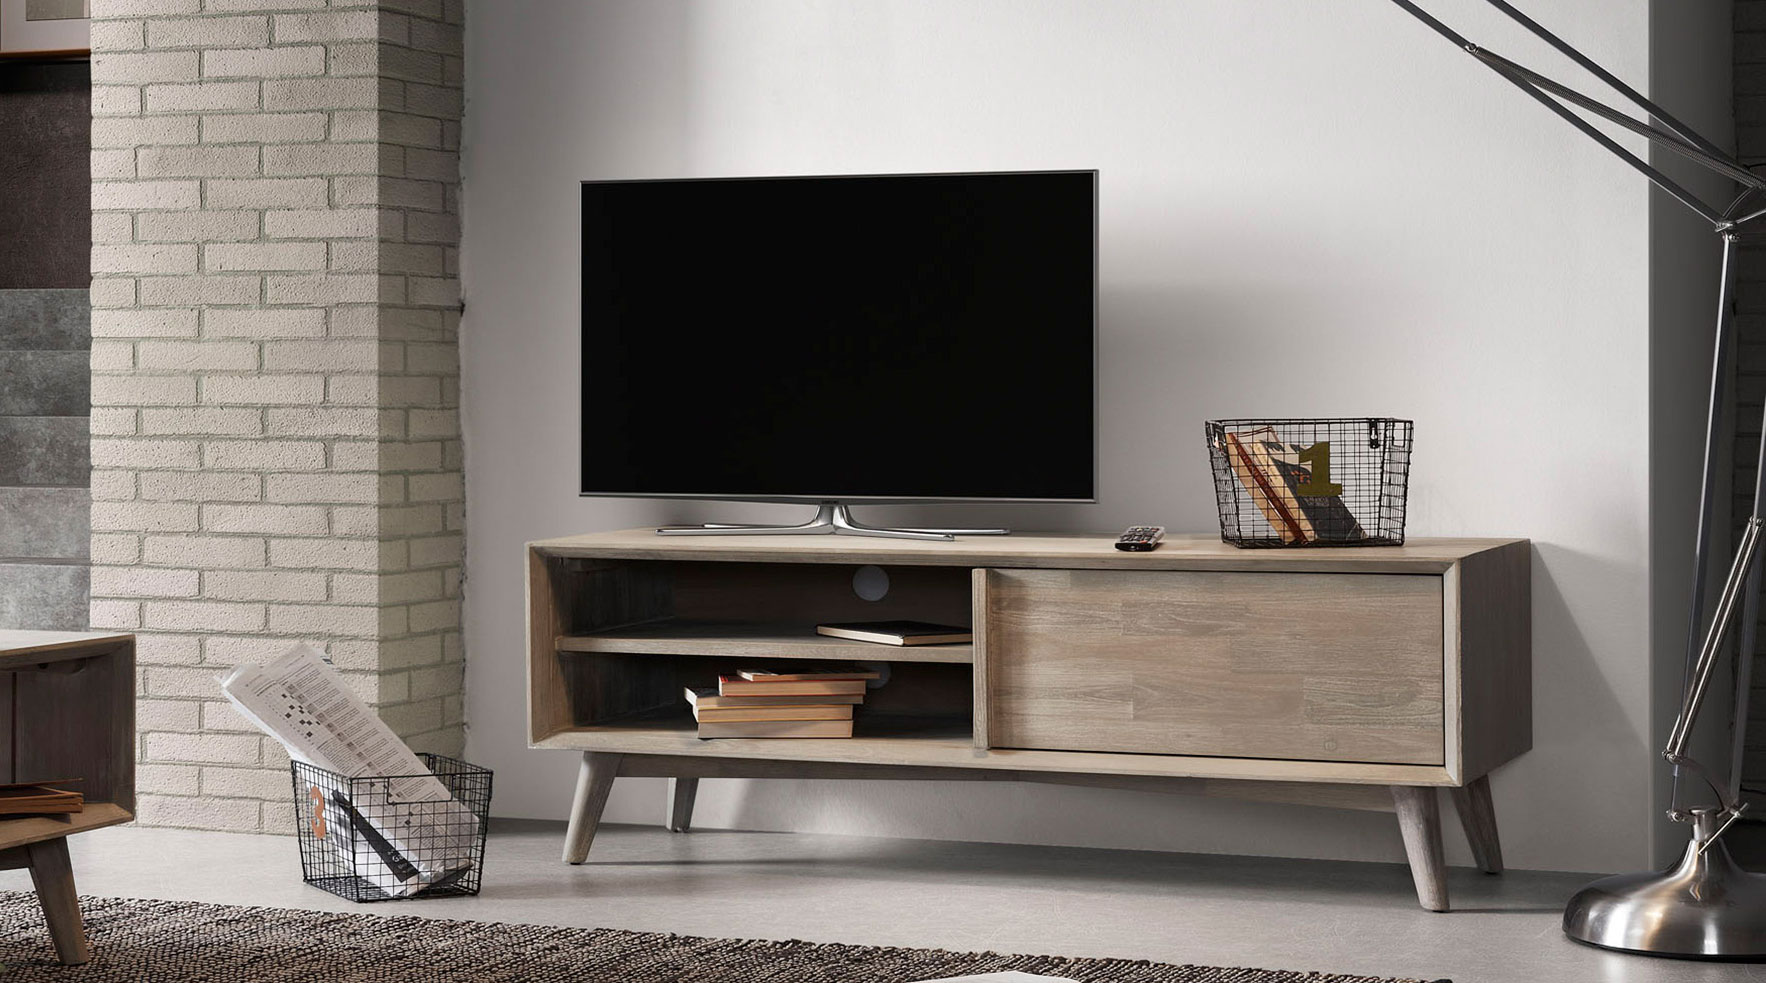 Mueble tv madera n rdica derwon 2 no disponible en - Muebles de tv de diseno ...